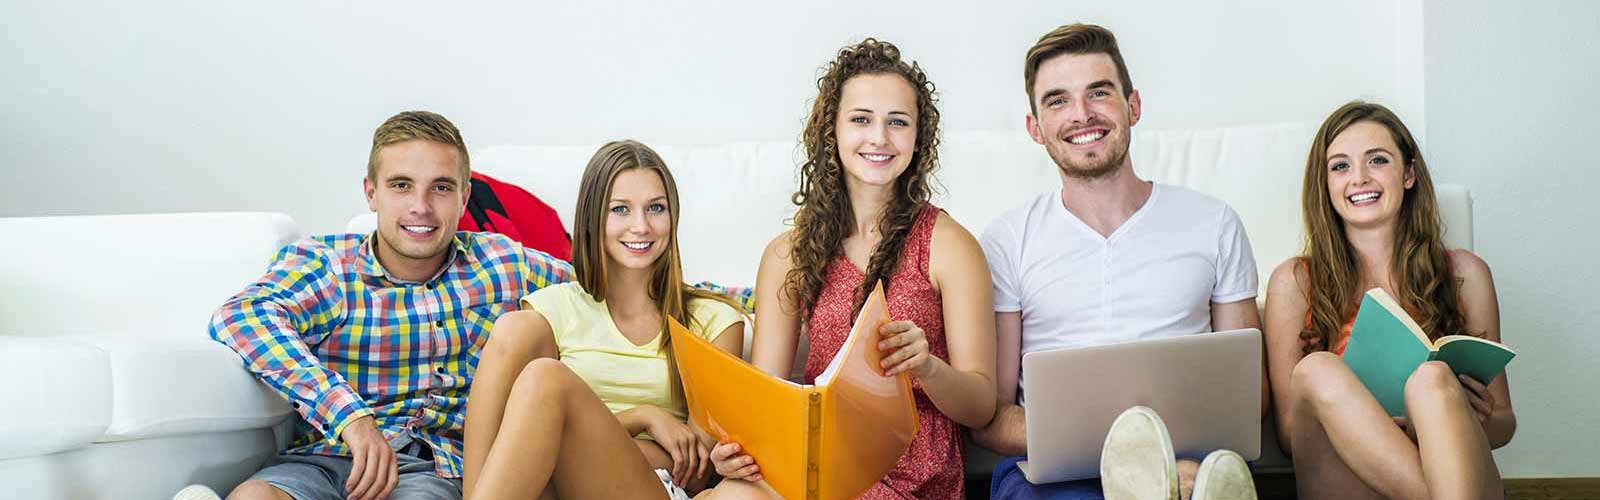 students3a